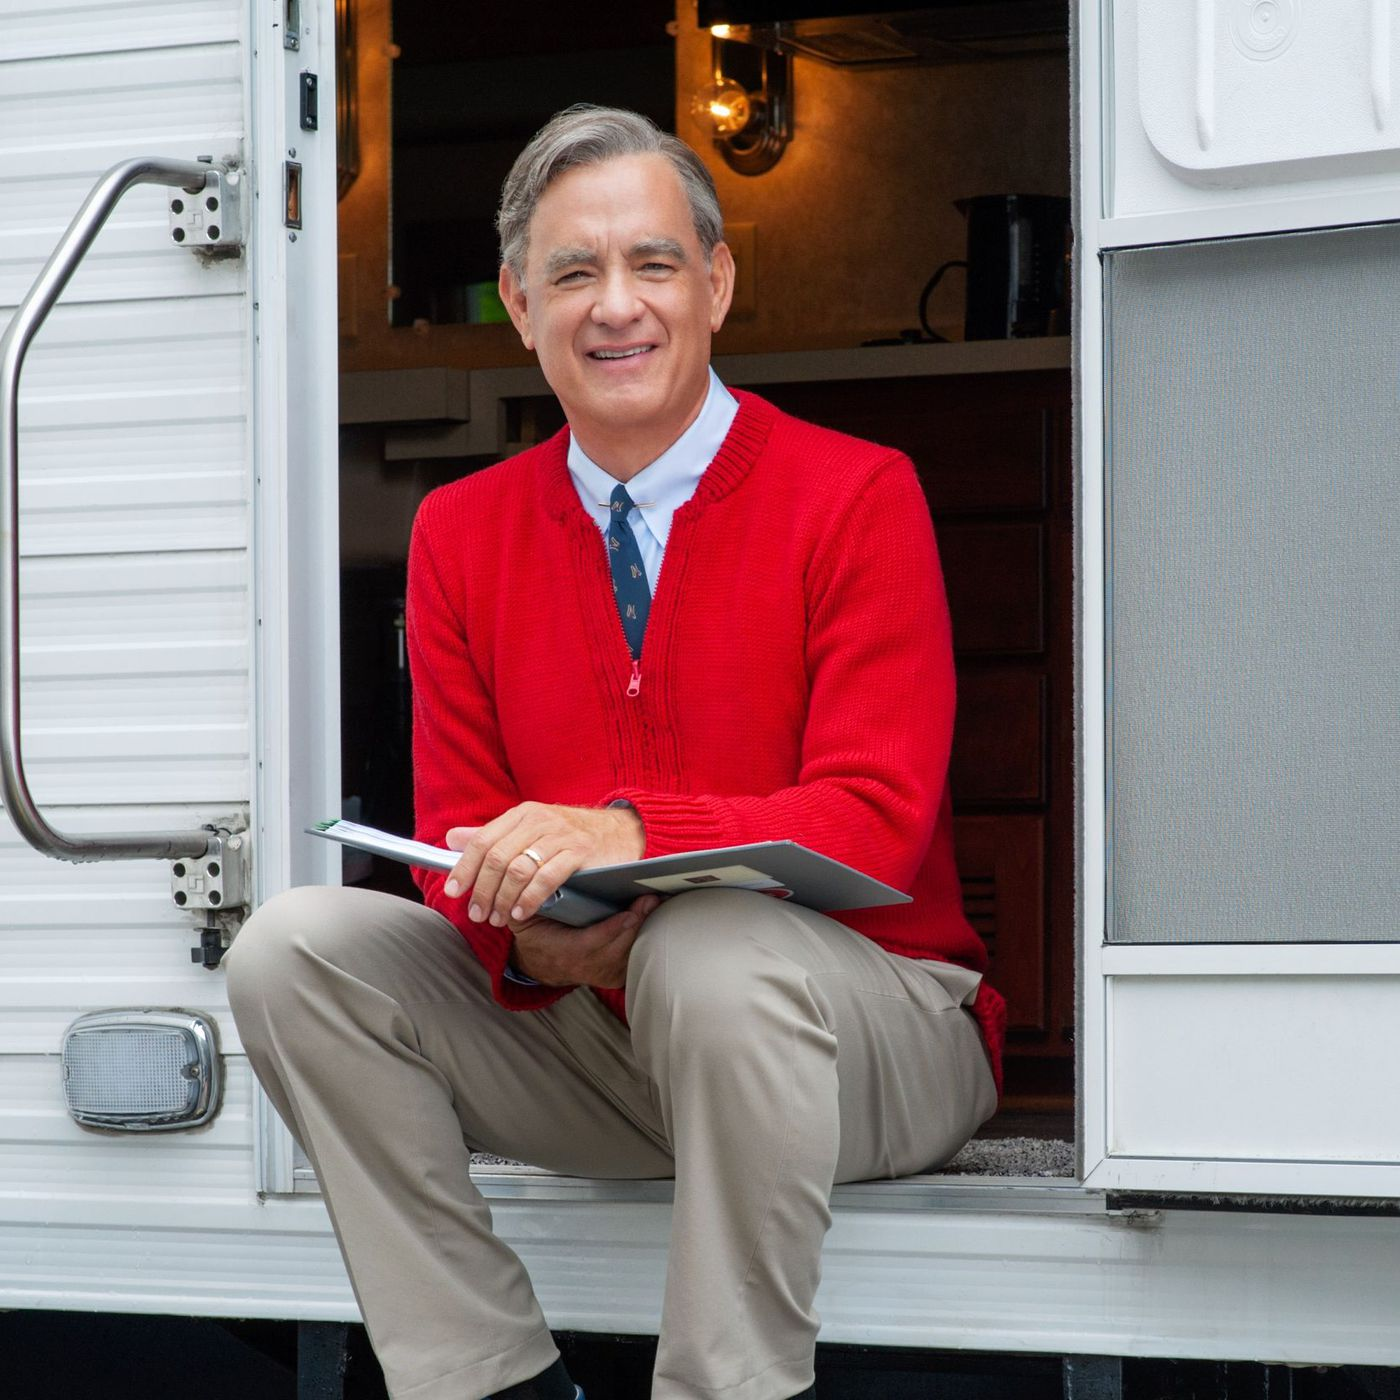 Watch The First Trailer For The Mister Rogers Movie Starring Tom Hanks Polygon